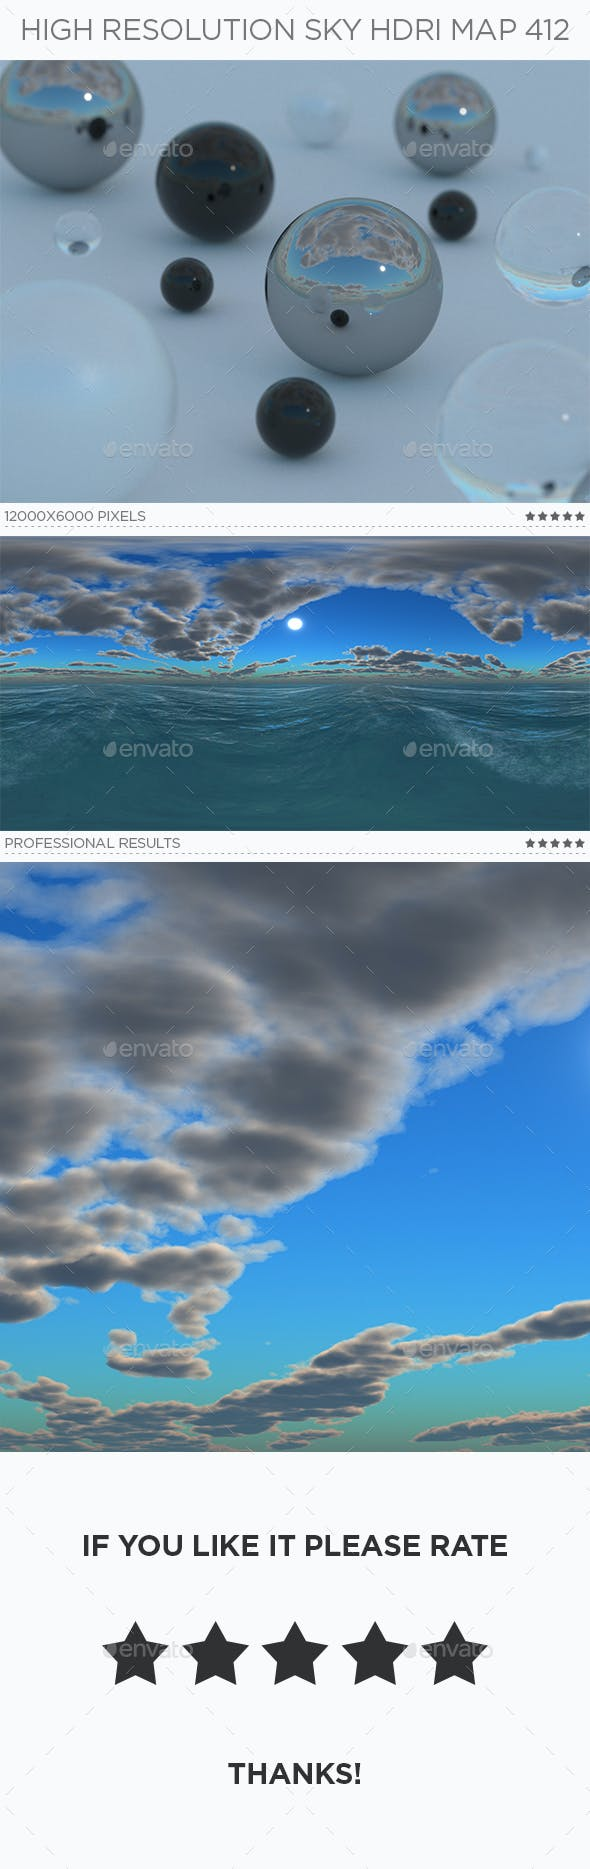 High Resolution Sky HDRi Map 412 - 3DOcean Item for Sale